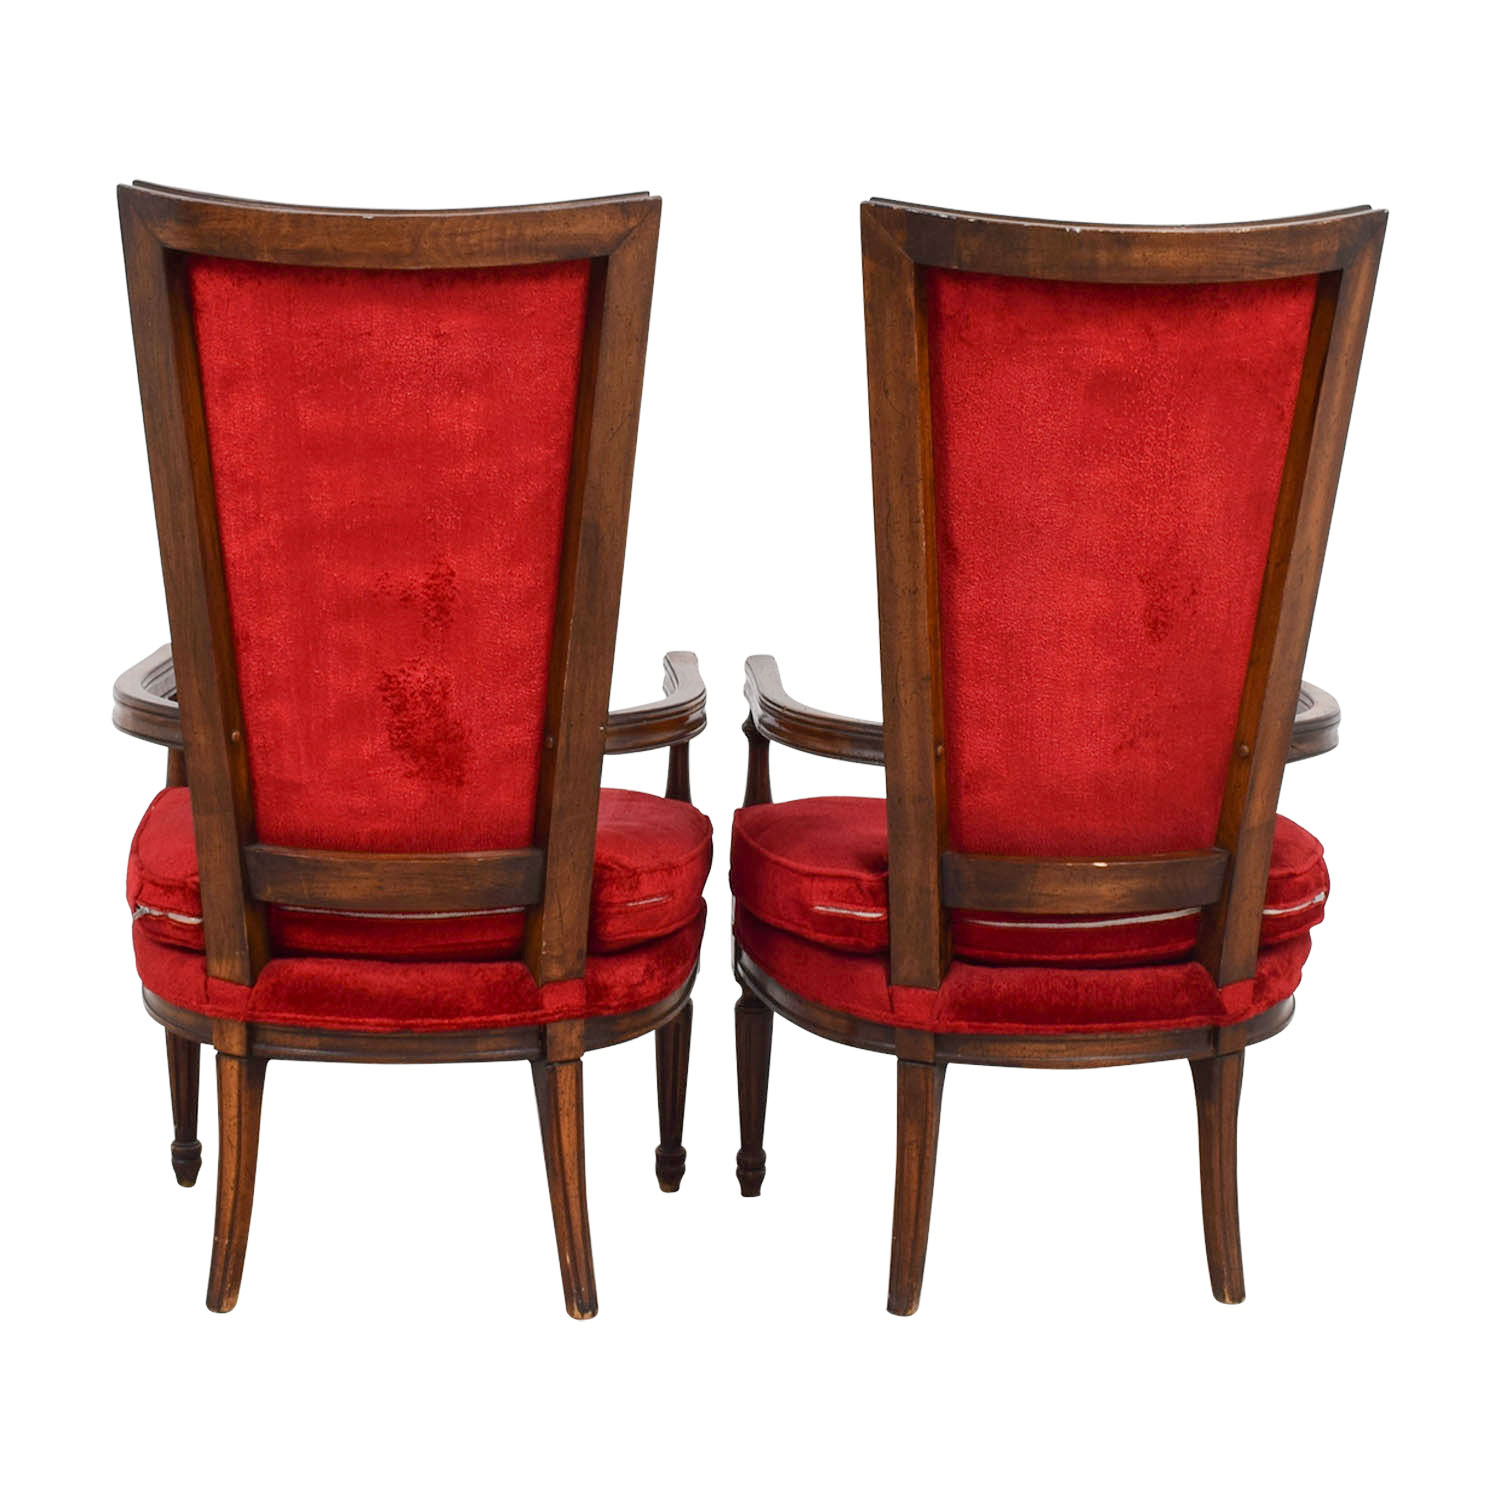 Vintage Red Tufted High Back Accent Chairs RED